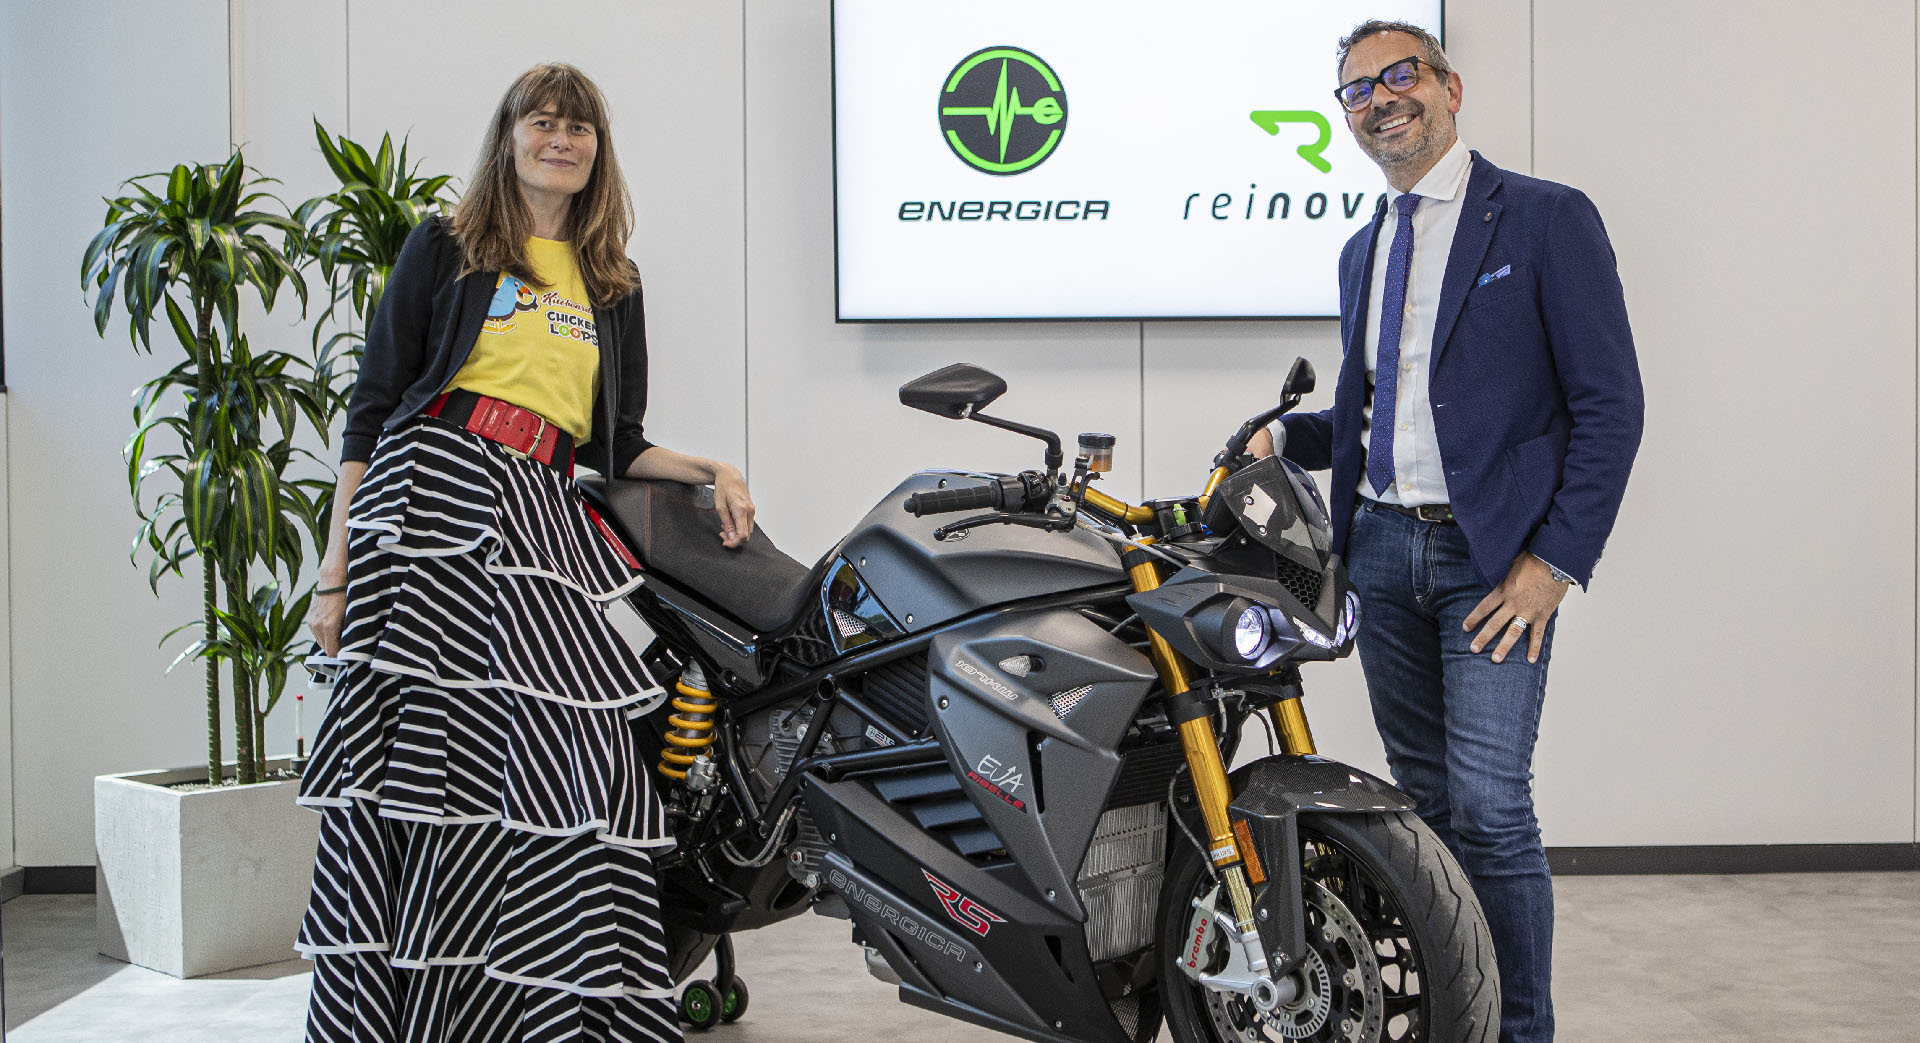 New technological partnership between Energica Motor Company S.p.A. and Reinova